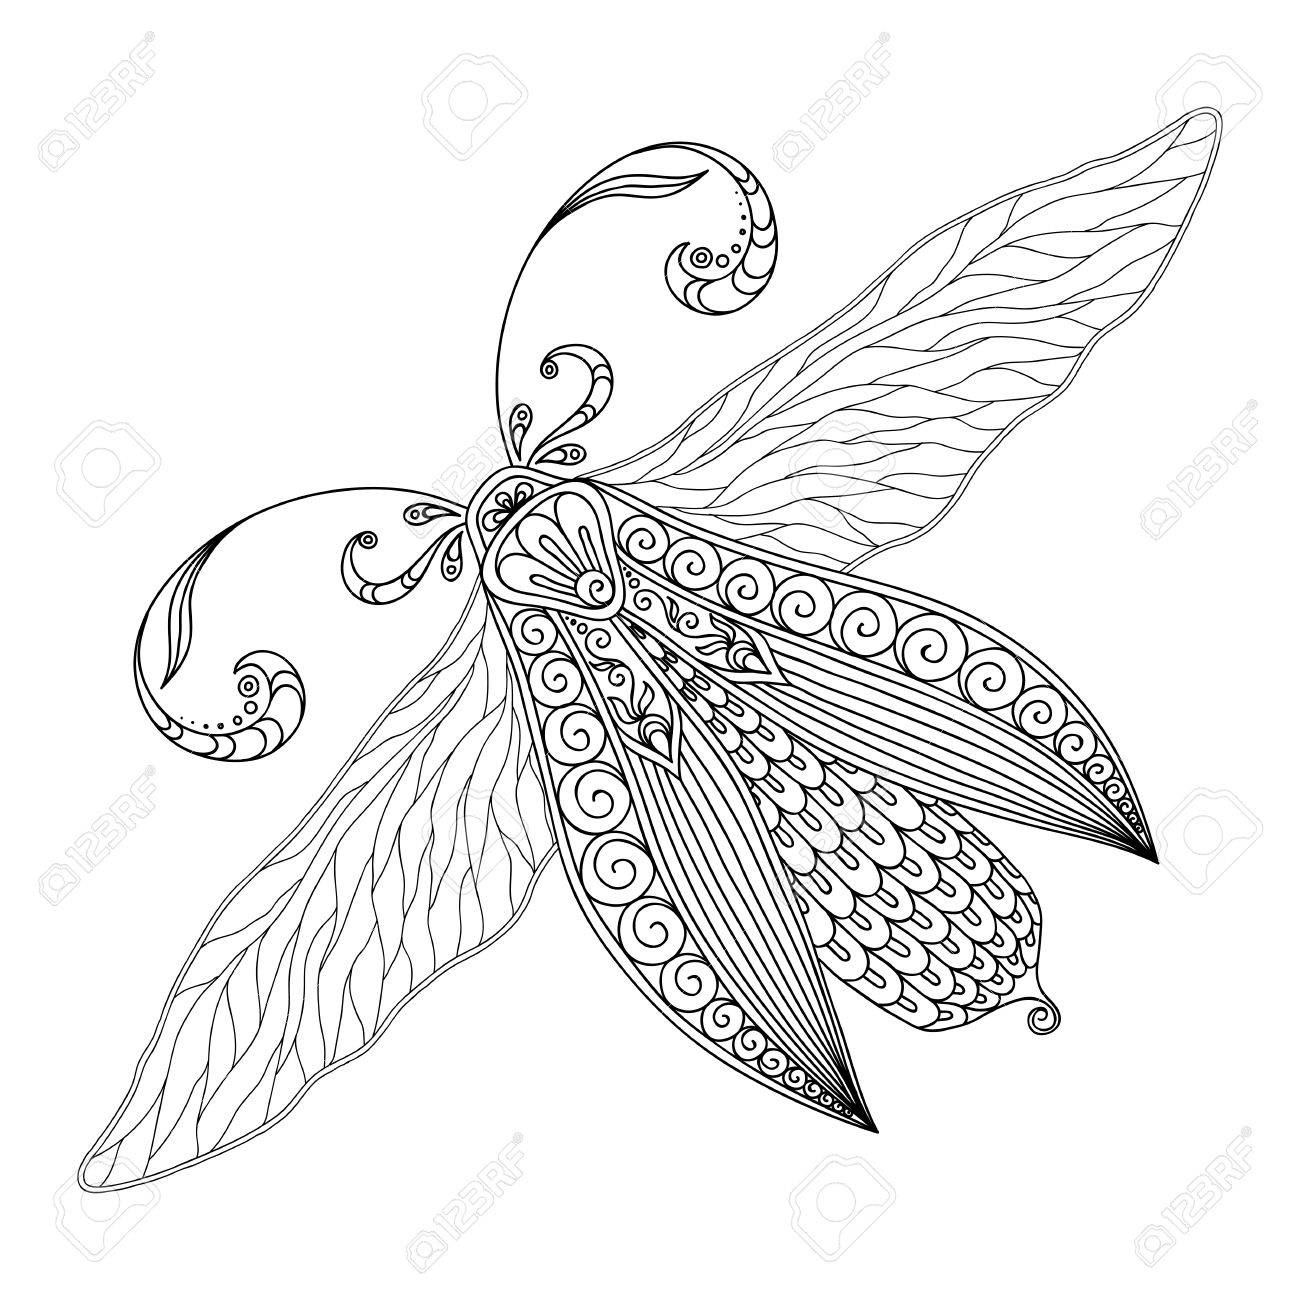 Pattern for coloring book. Henna Mehendi Tattoo Style Doodles butterfly. Design element.. Hand Drawn vector illustration isolated on white background.Coloring book pages for kids and adults. - 47645766